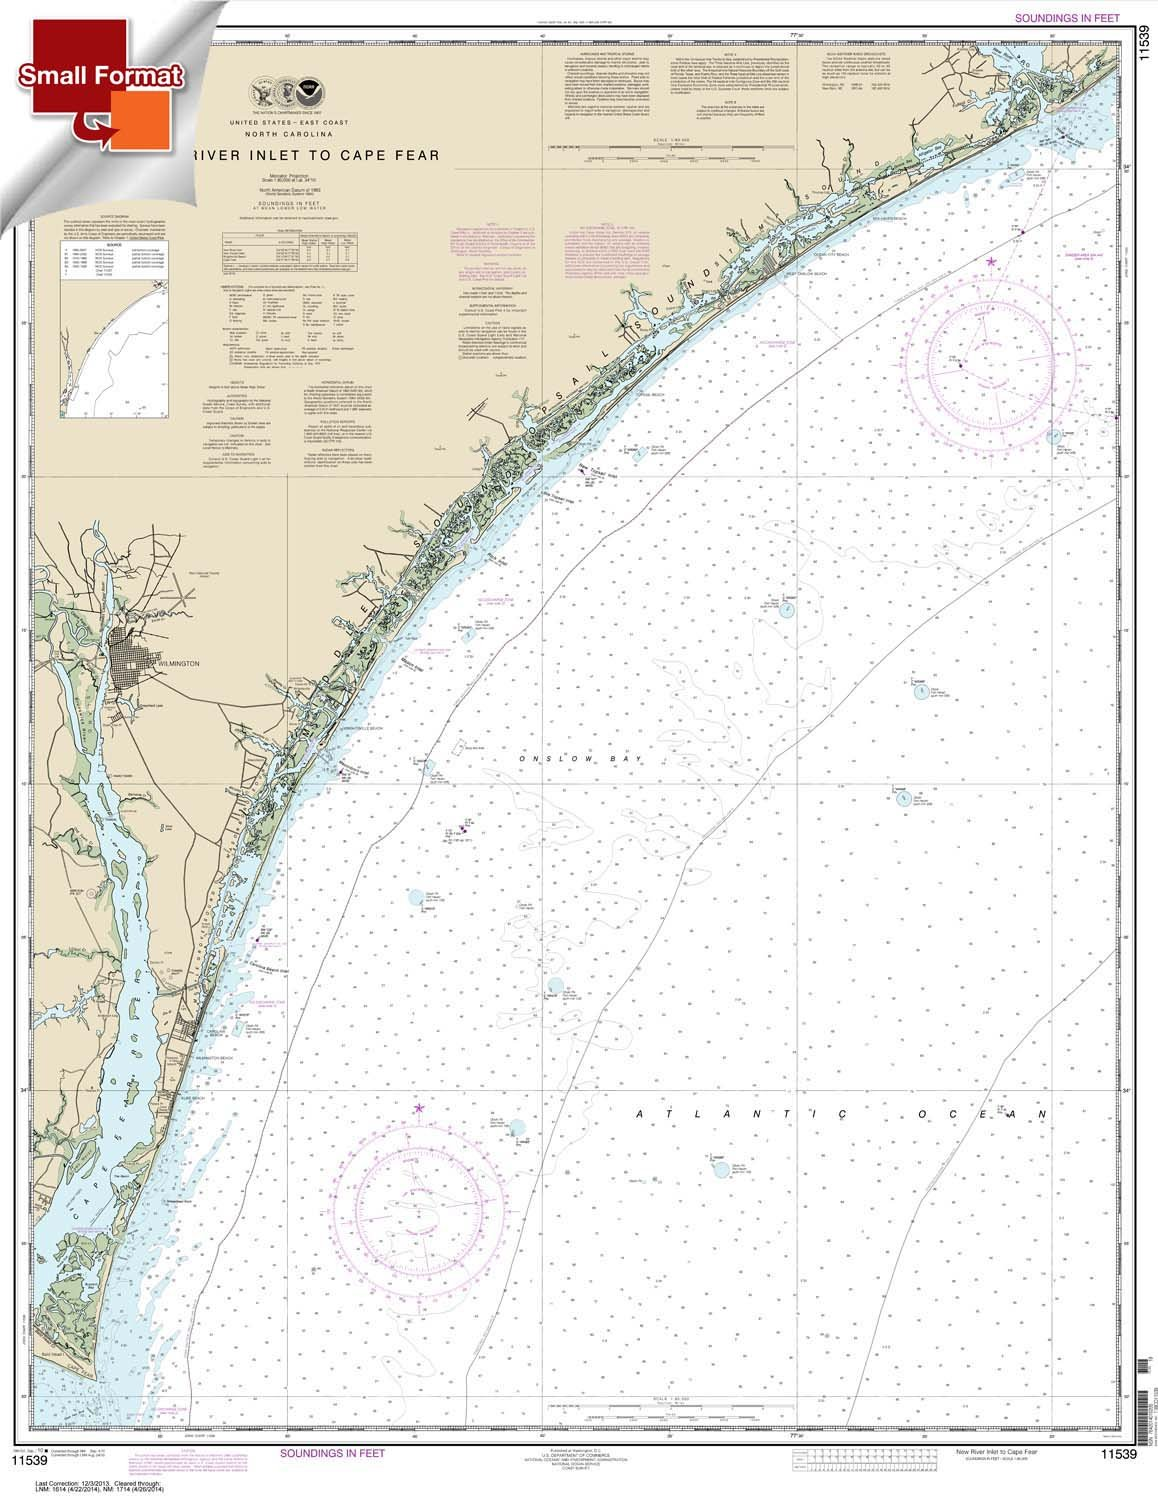 New River Inlet to Cape Fear 21.00 x 27.17 Paradise Cay Publications NOAA Chart 11539 SMALL FORMAT WATERPROOF